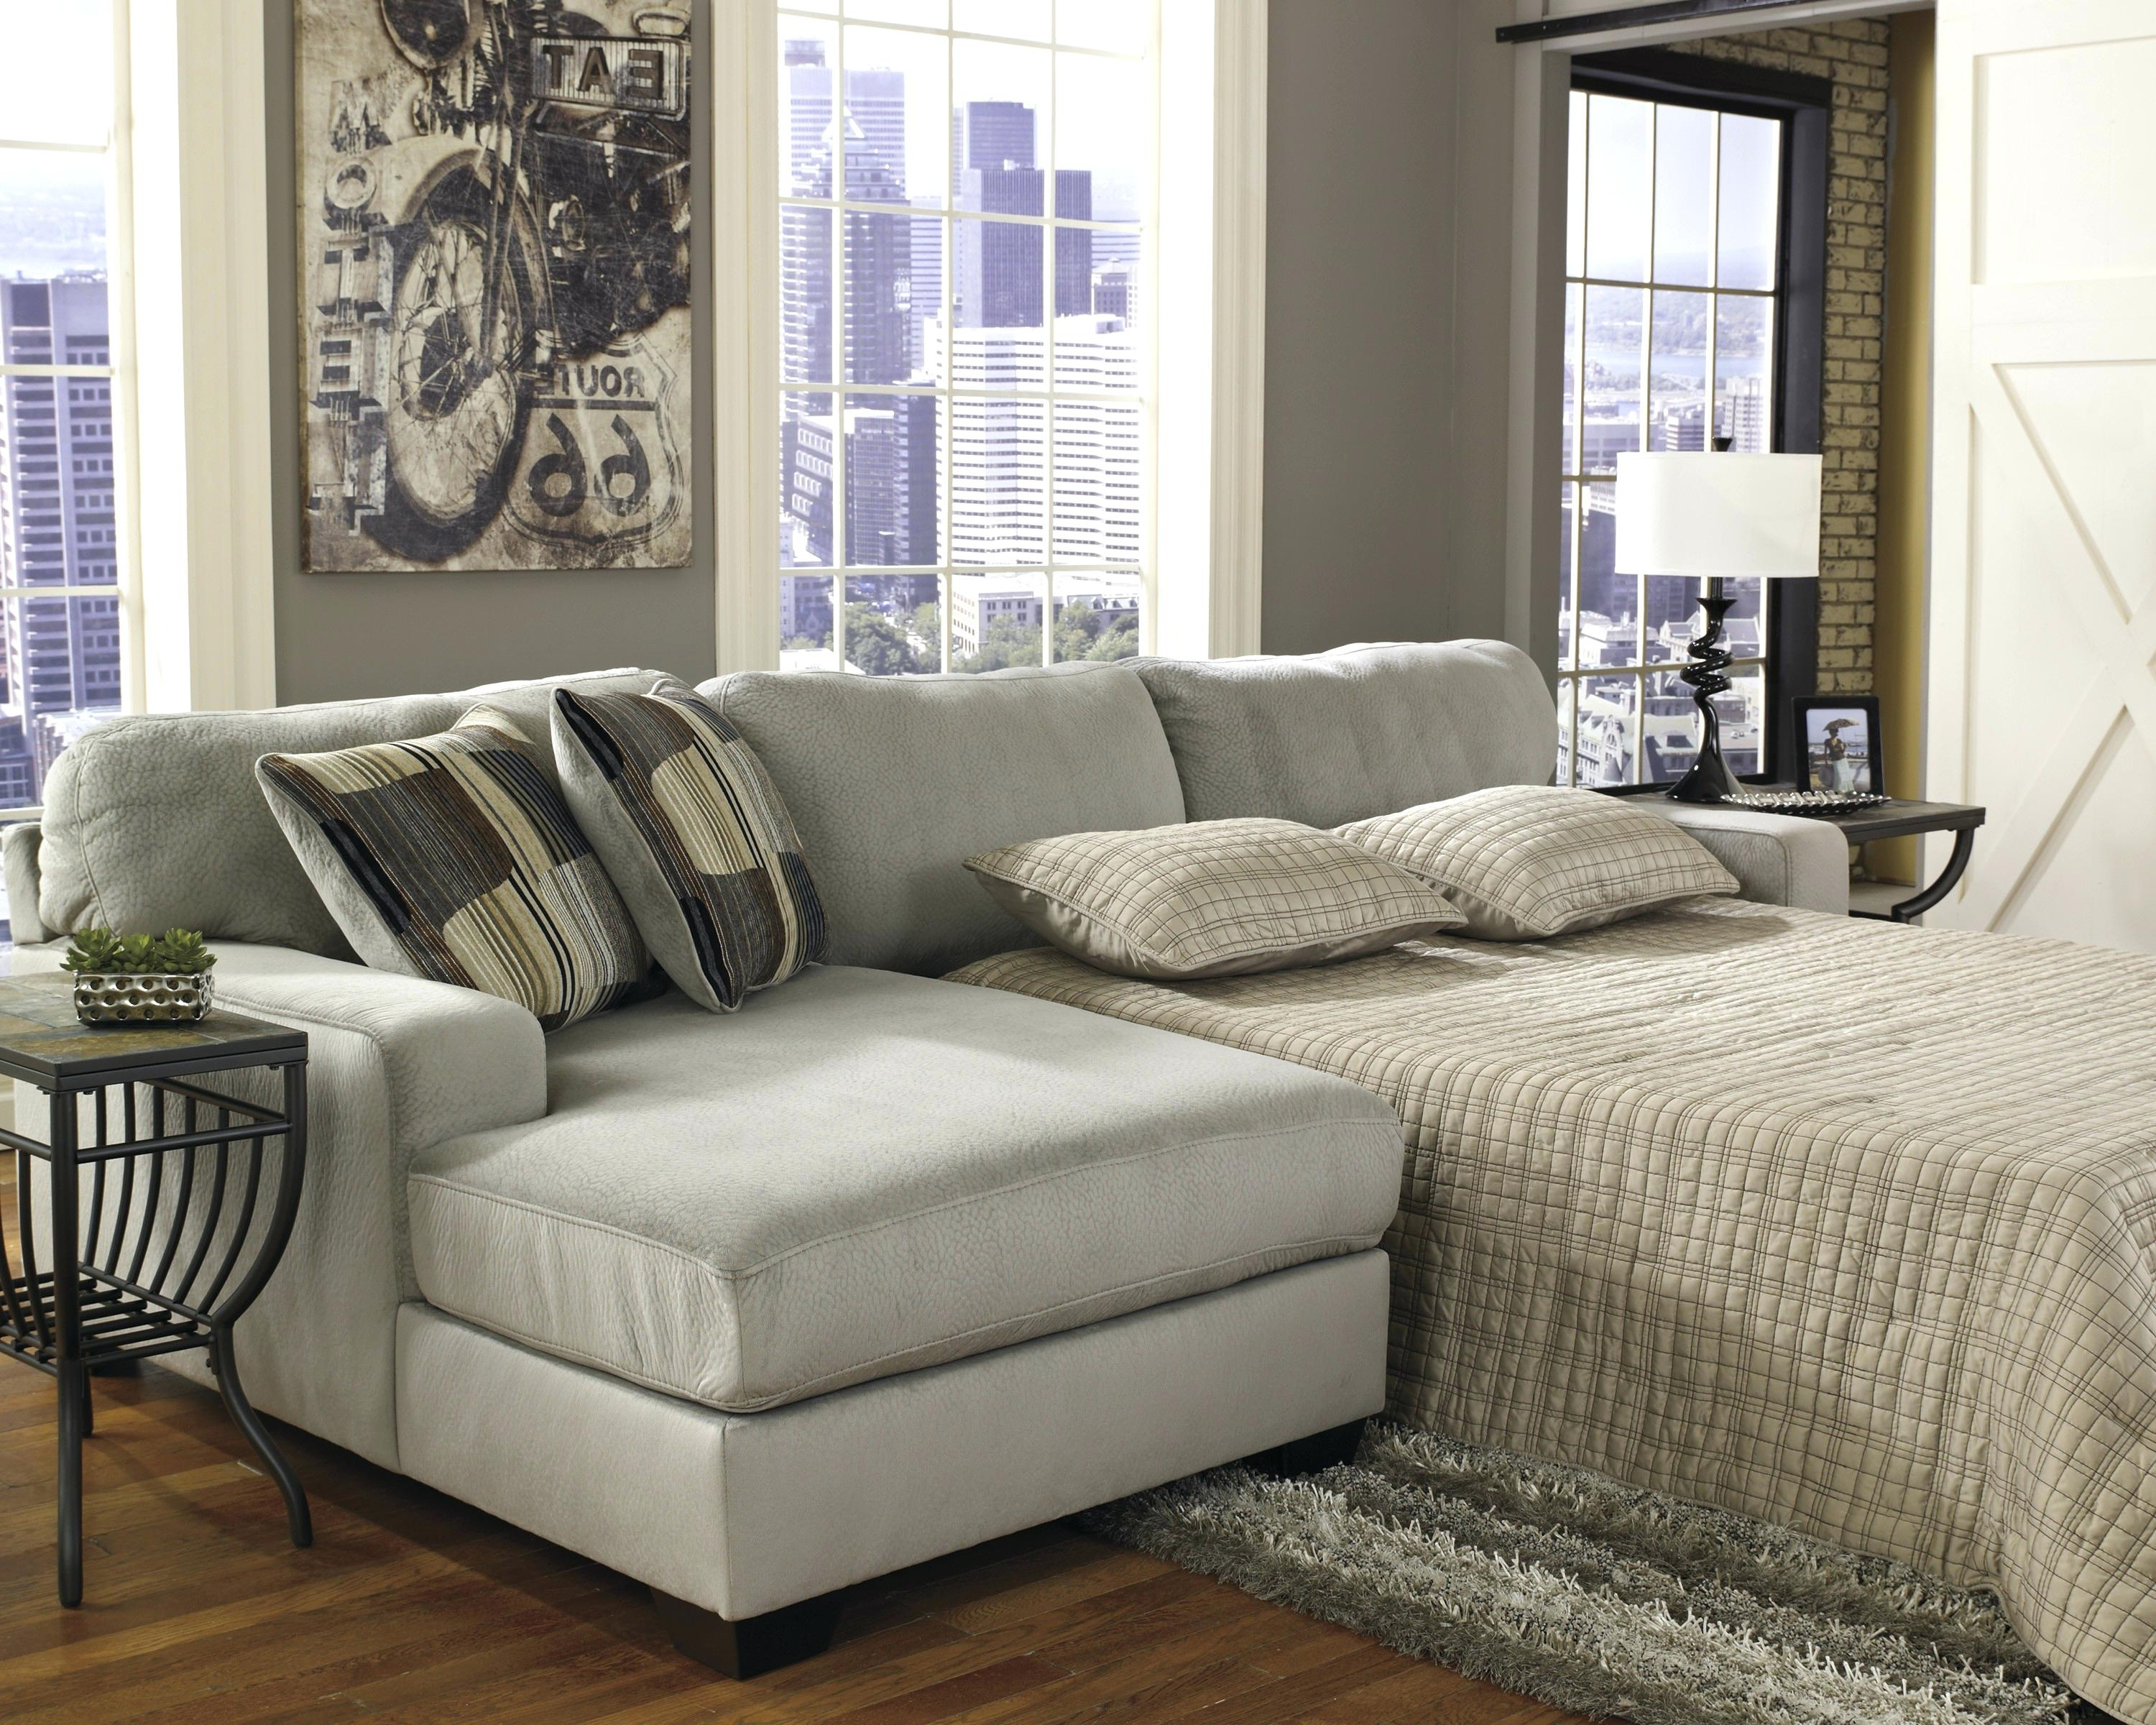 Popular Canada Sale Sectional Sofas Intended For Cheap Chaise Sofa Sectionals For Sale Sectional Sofas Canada (View 13 of 20)